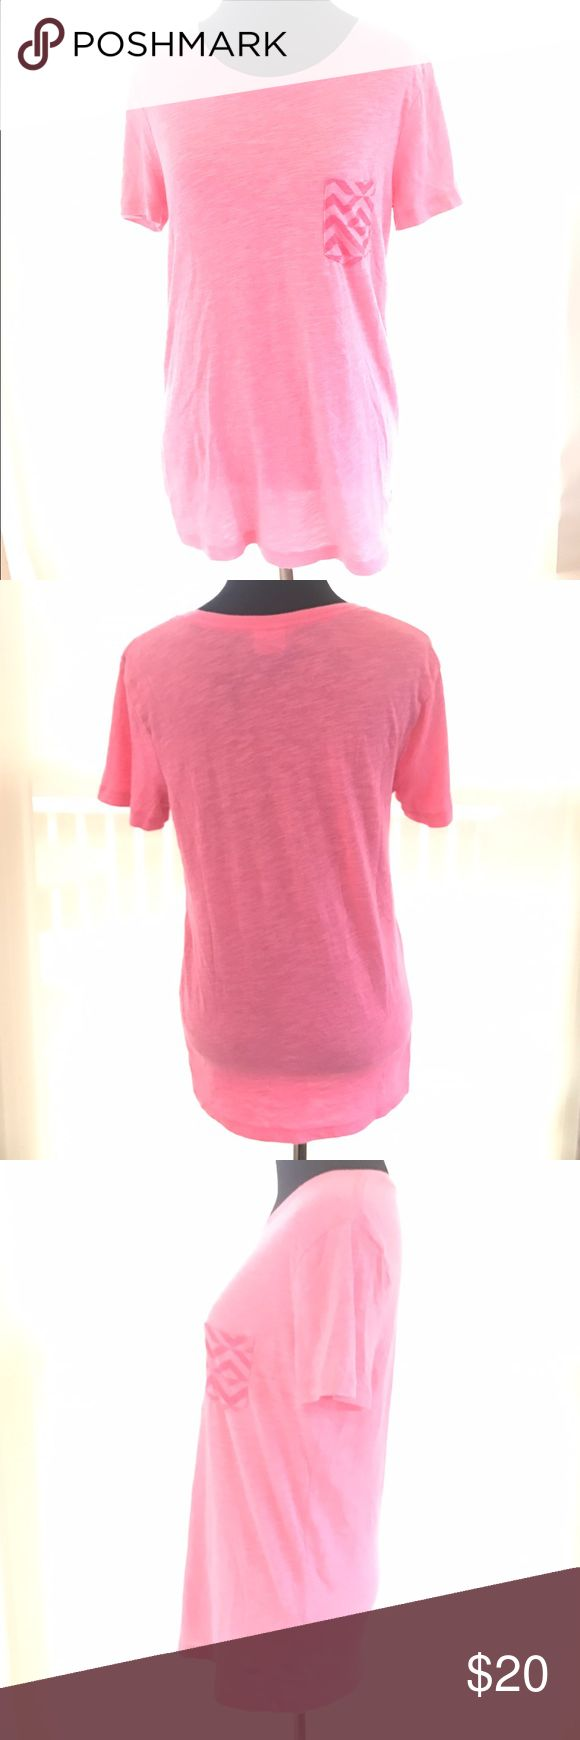 PINK VICTORIAS SECRET CHEVRON POCKET T SHIRT SZ XS Super cute good condition pink Victoria's Secret shirt sleeve orange pink color t shirt. Cute chevron accent pocket in front. Size XS PINK Victoria's Secret Tops Tees - Short Sleeve